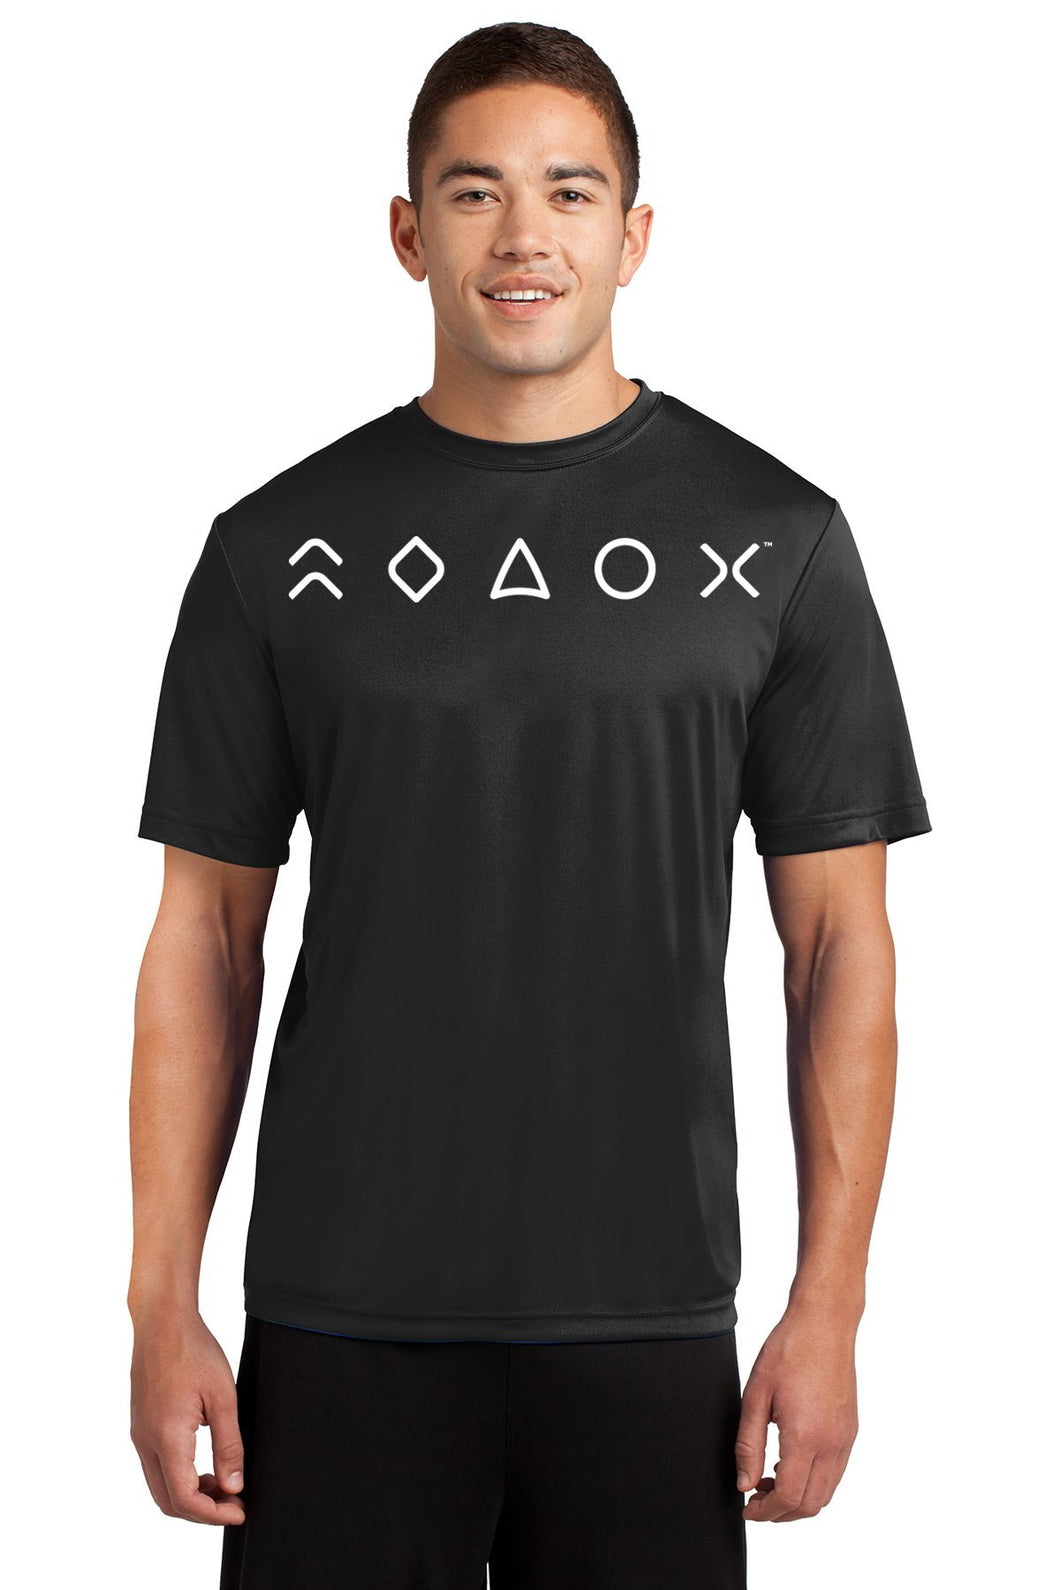 MaxLiving 5 Essentials Men's Black Short Sleeve Athletic Shirt